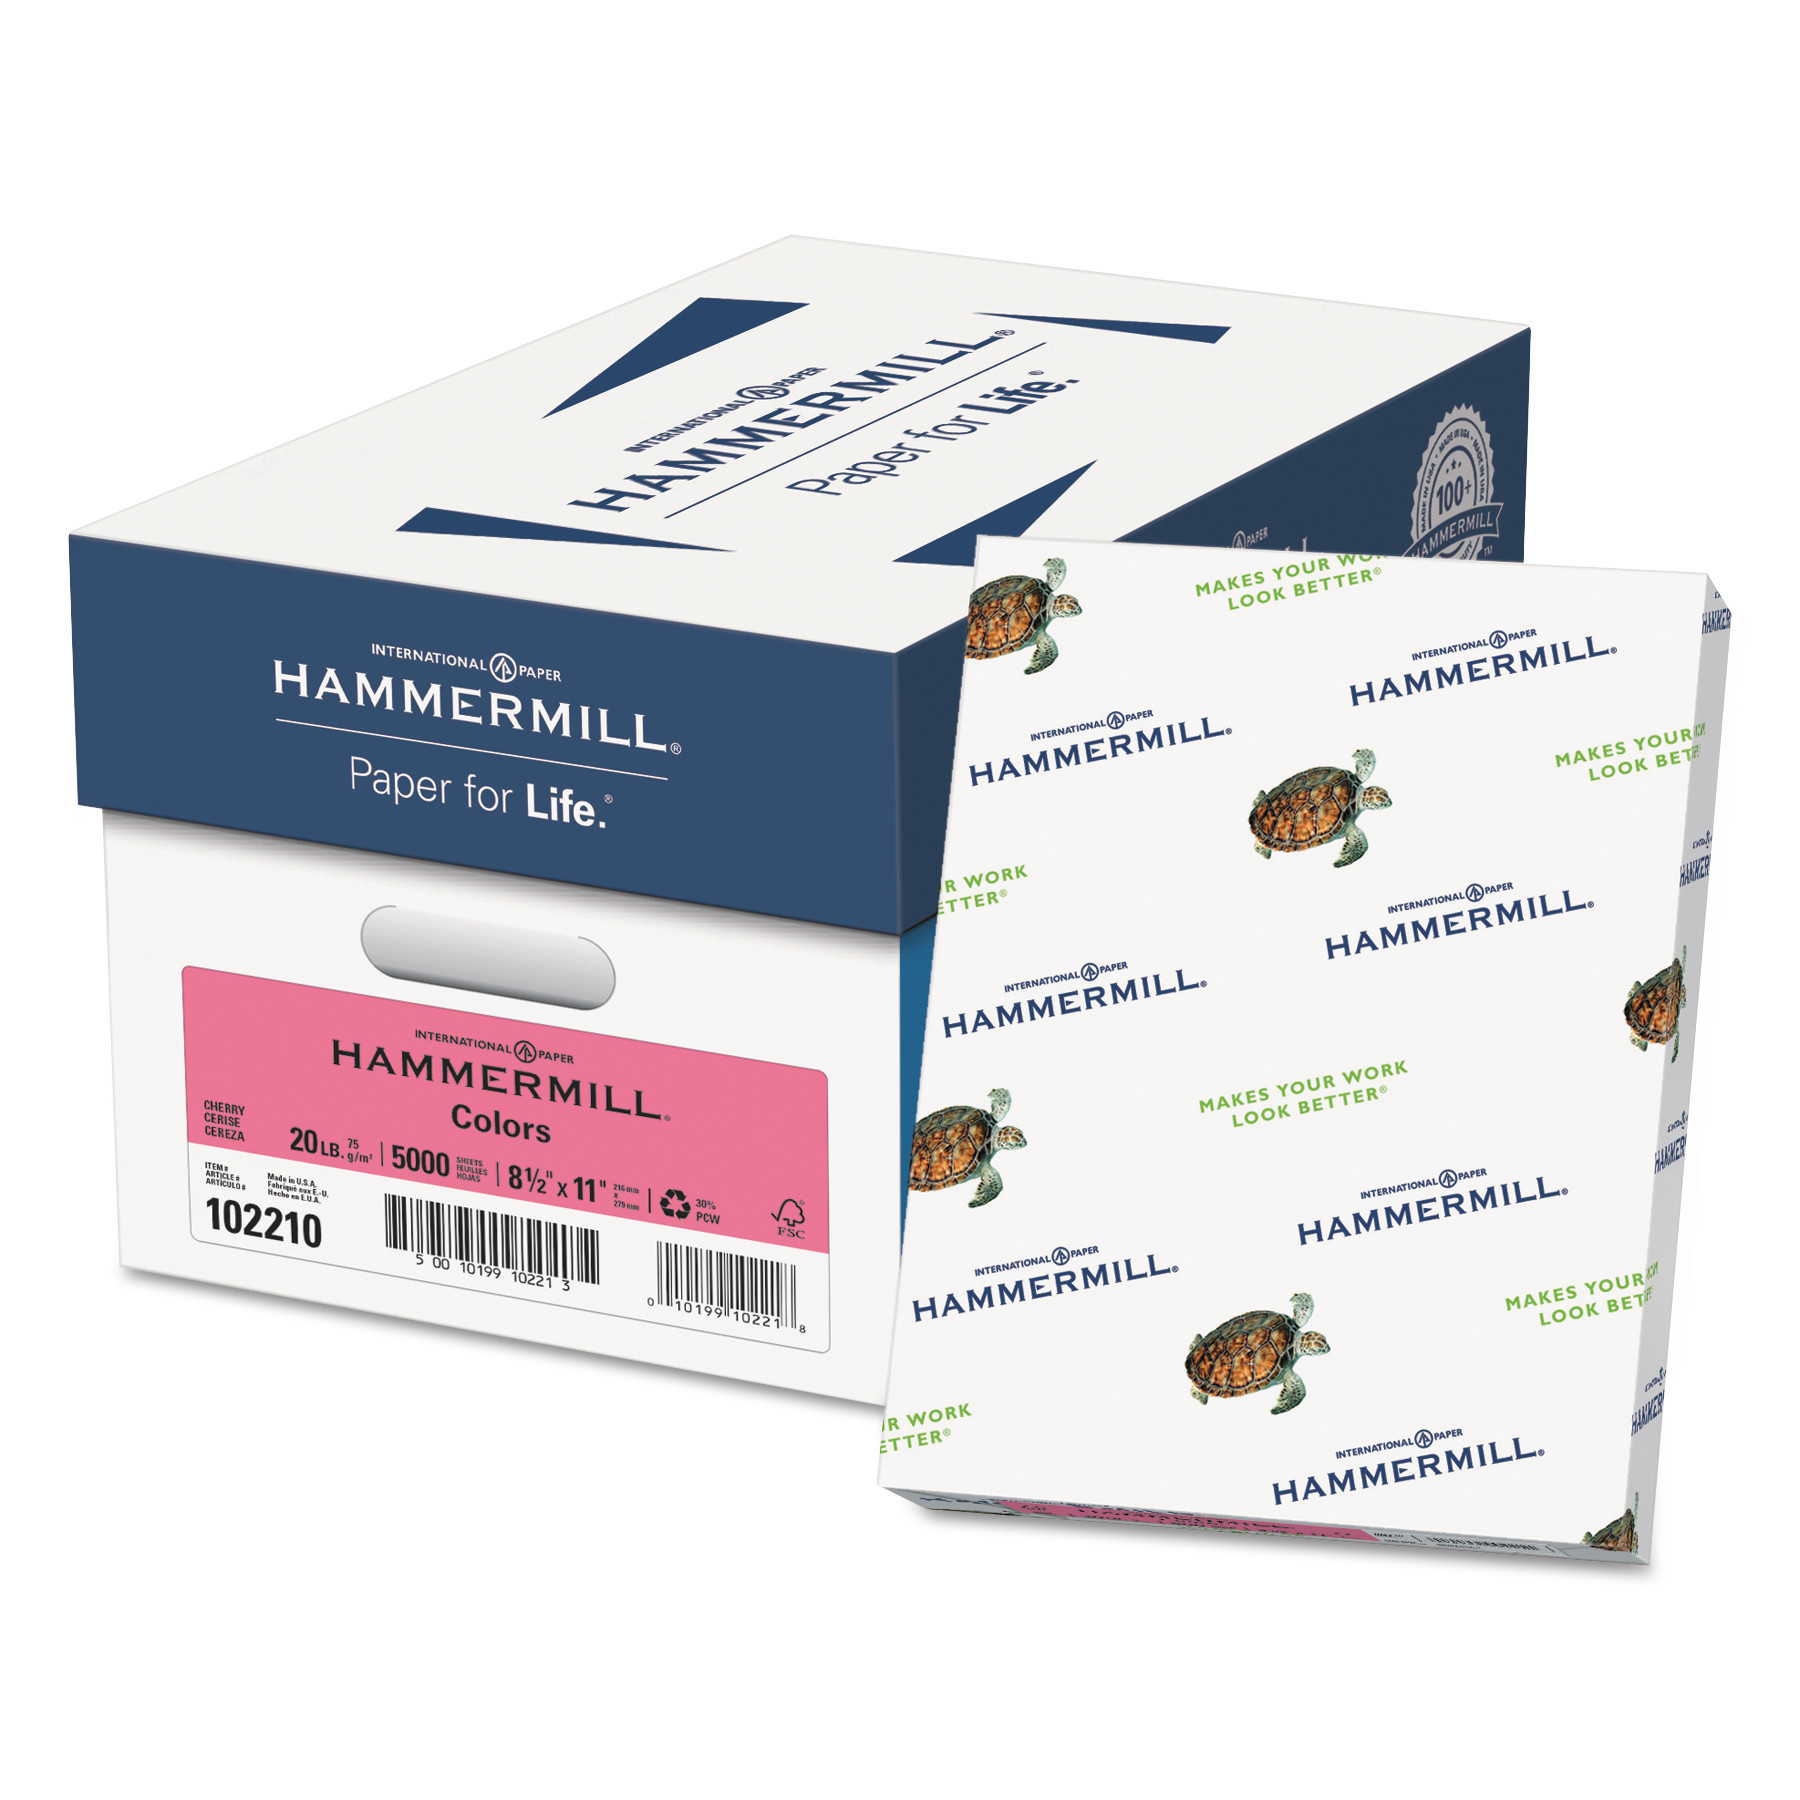 Hammermill Colors Colored Paper, Light Cherry, 5000 / Carton (Quantity)